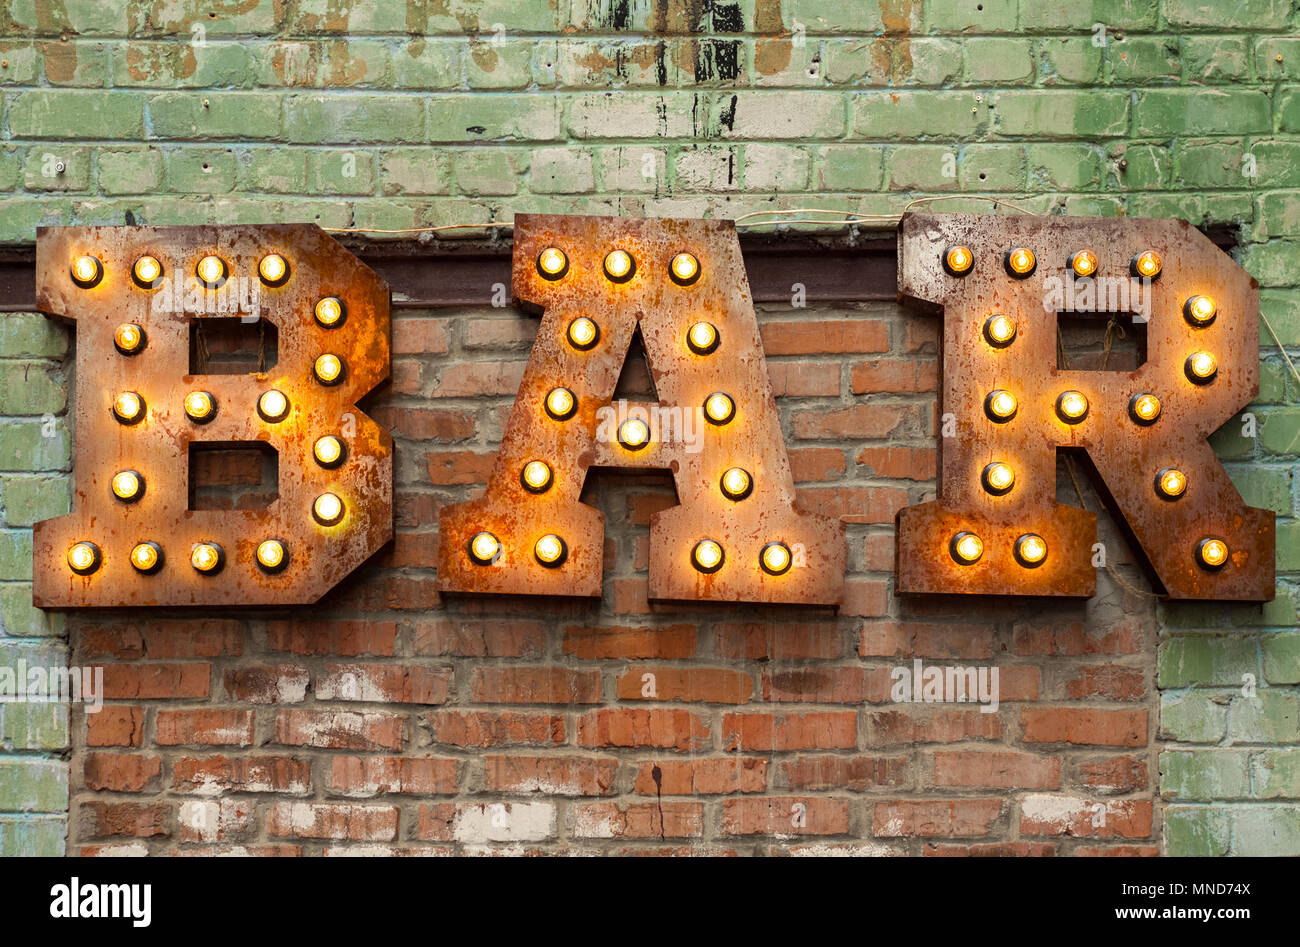 Bar signboard. Inscription from large metal letters decorated with glowing light bulbs on the brick wall - Stock Image